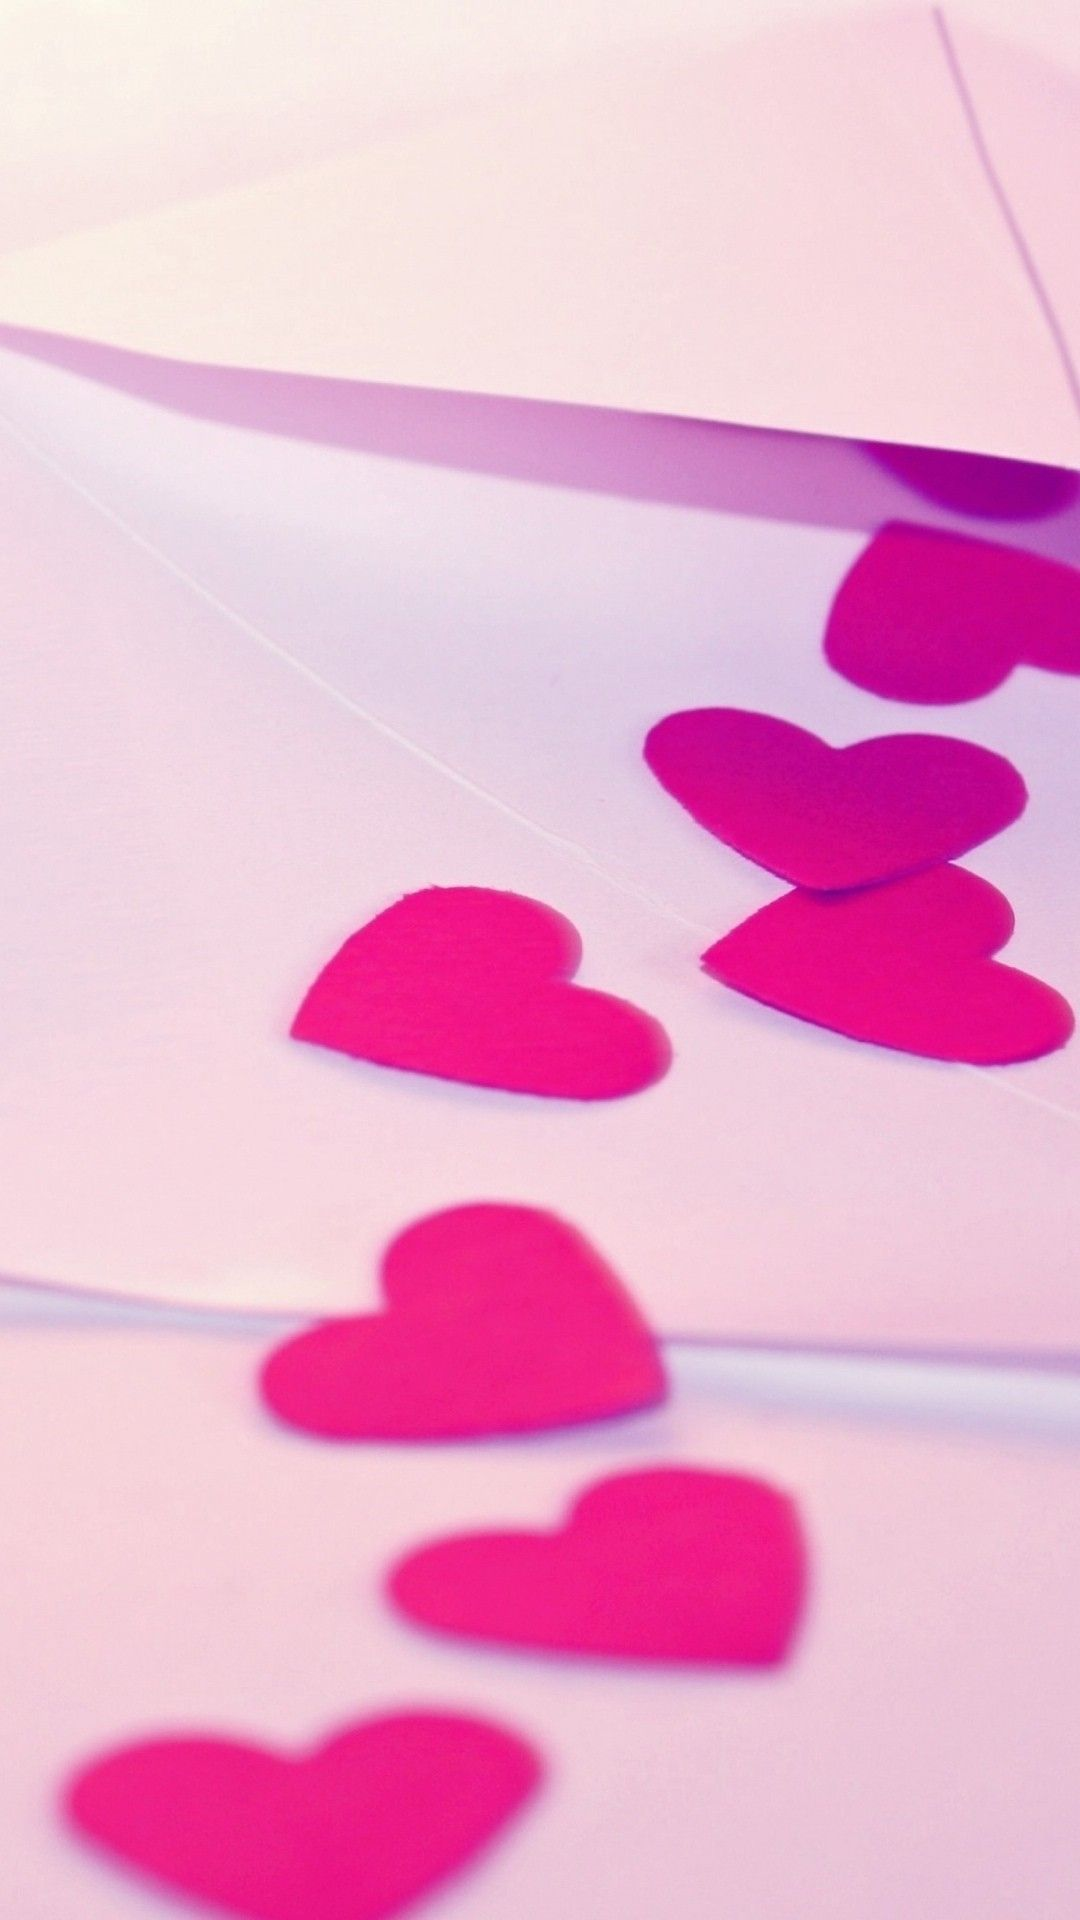 Cute Girly Love Wallpapers Top Free Cute Girly Love Backgrounds Wallpaperaccess